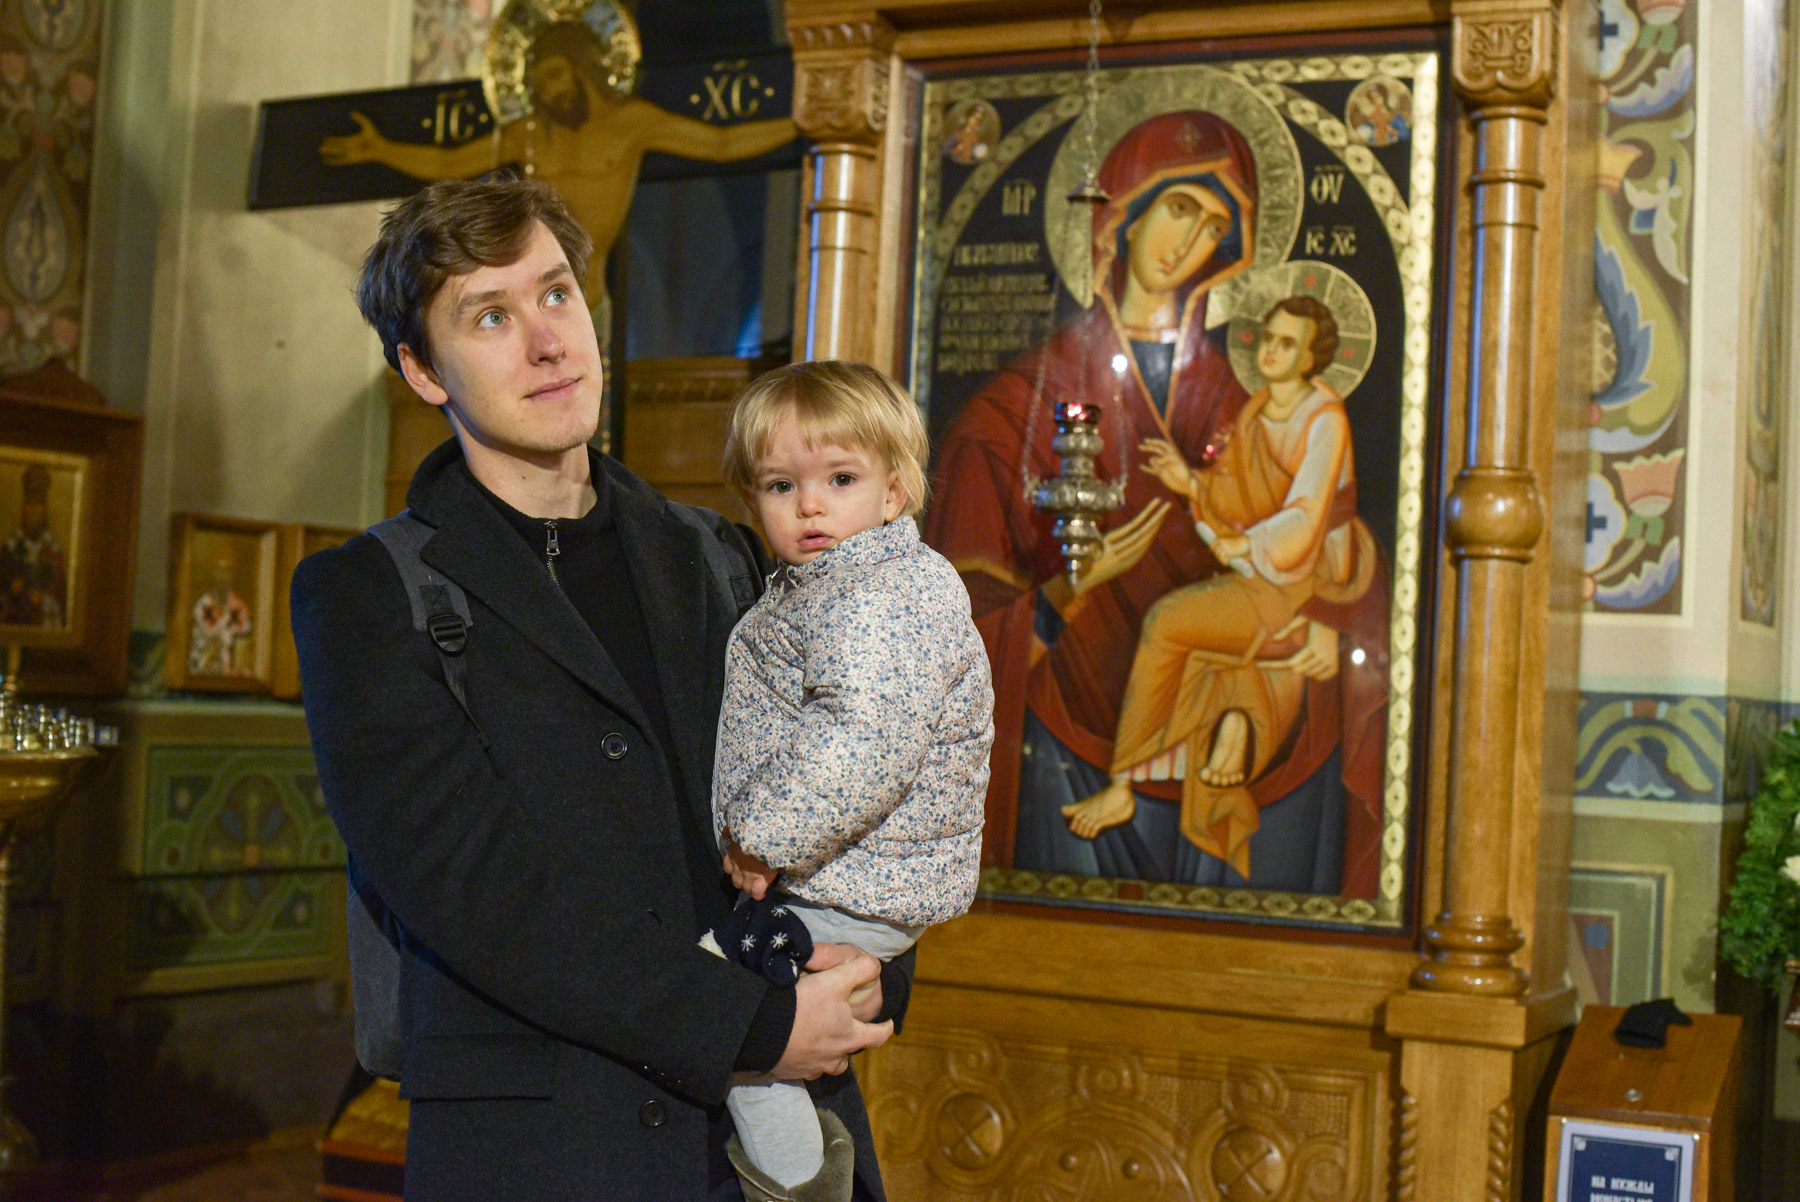 photos of orthodox christmas 0242 1